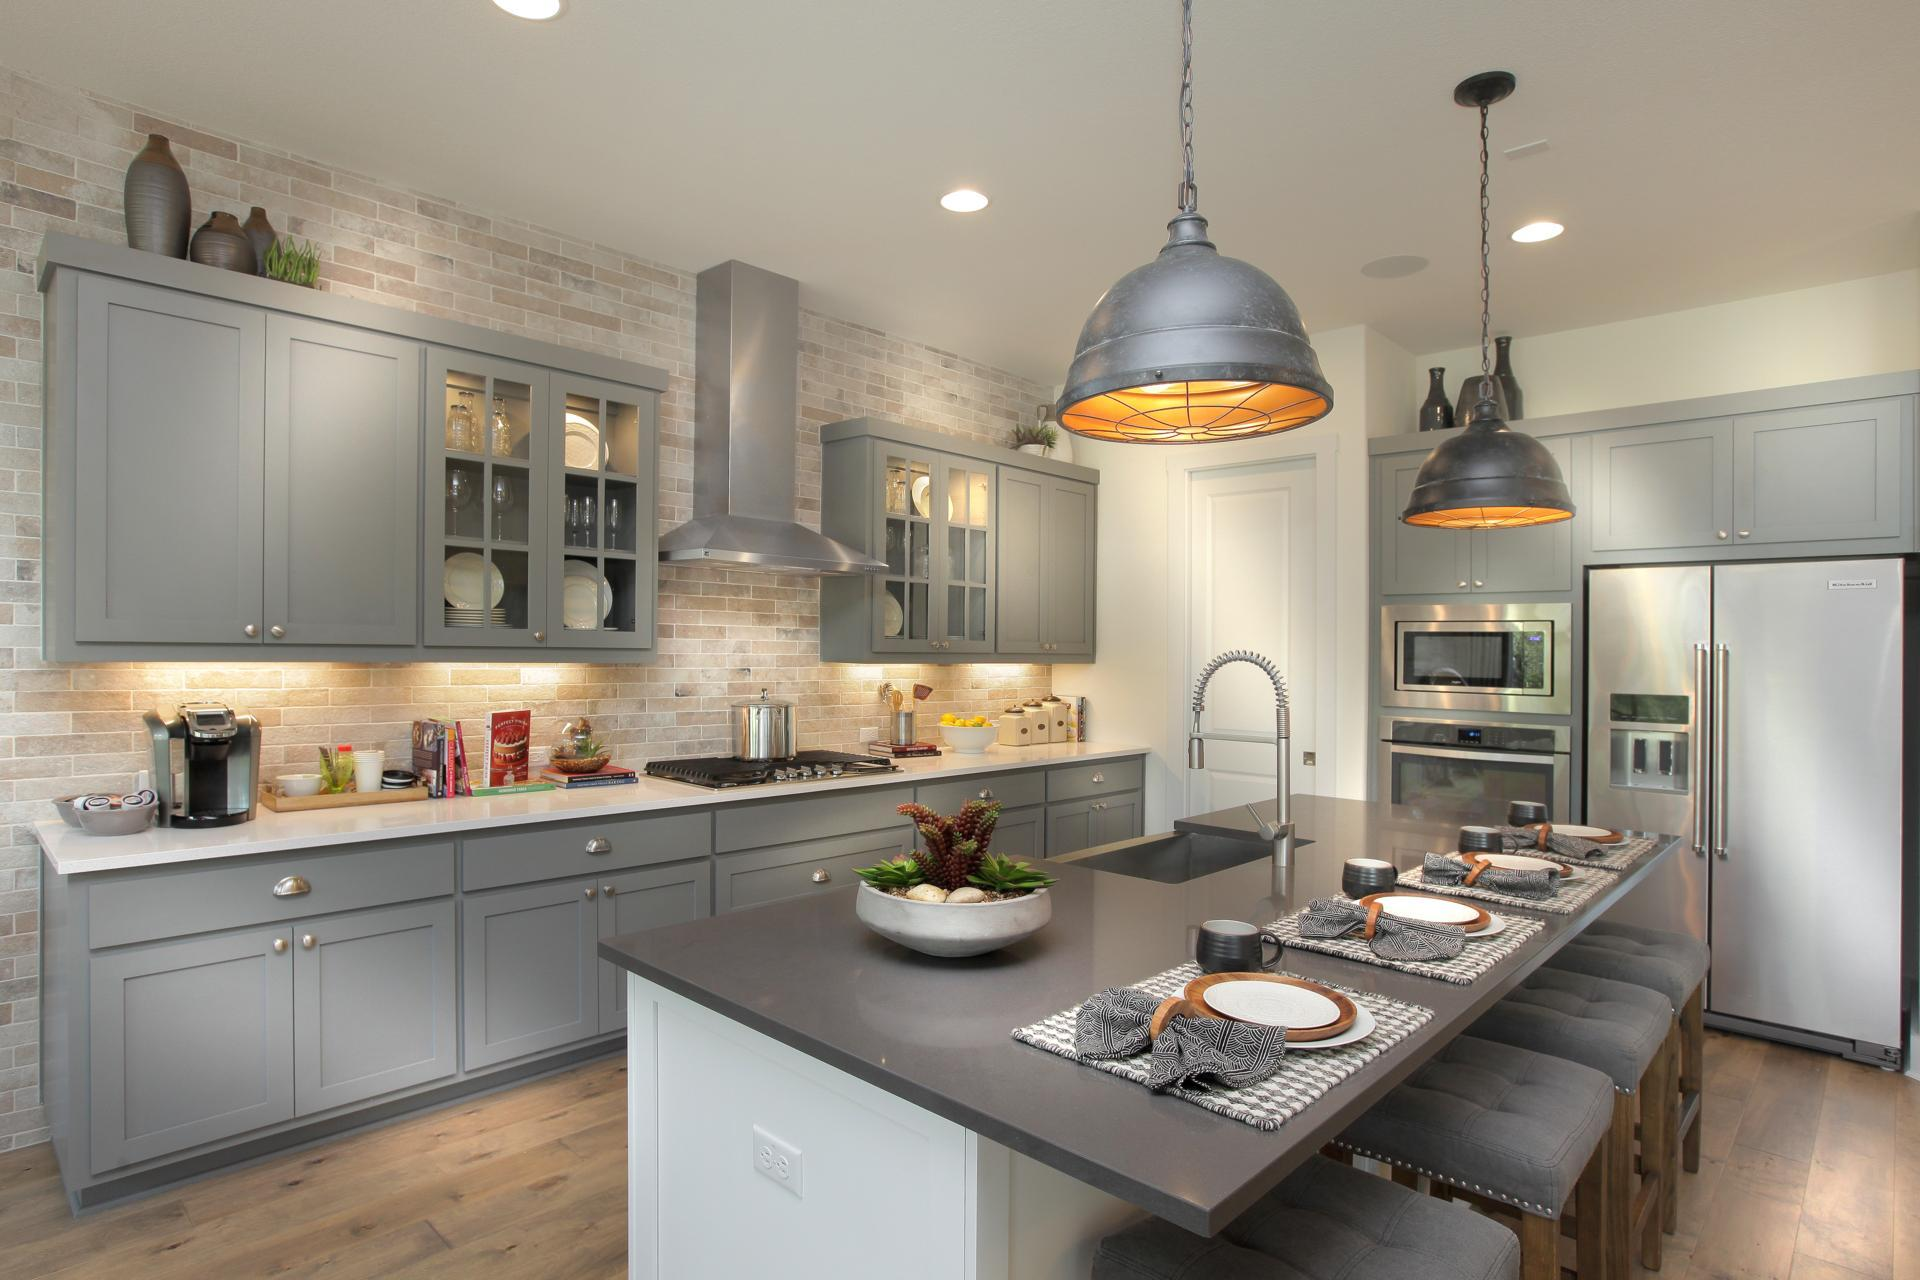 Kitchen featured in the Sumlin By Drees Custom Homes in Dallas, TX